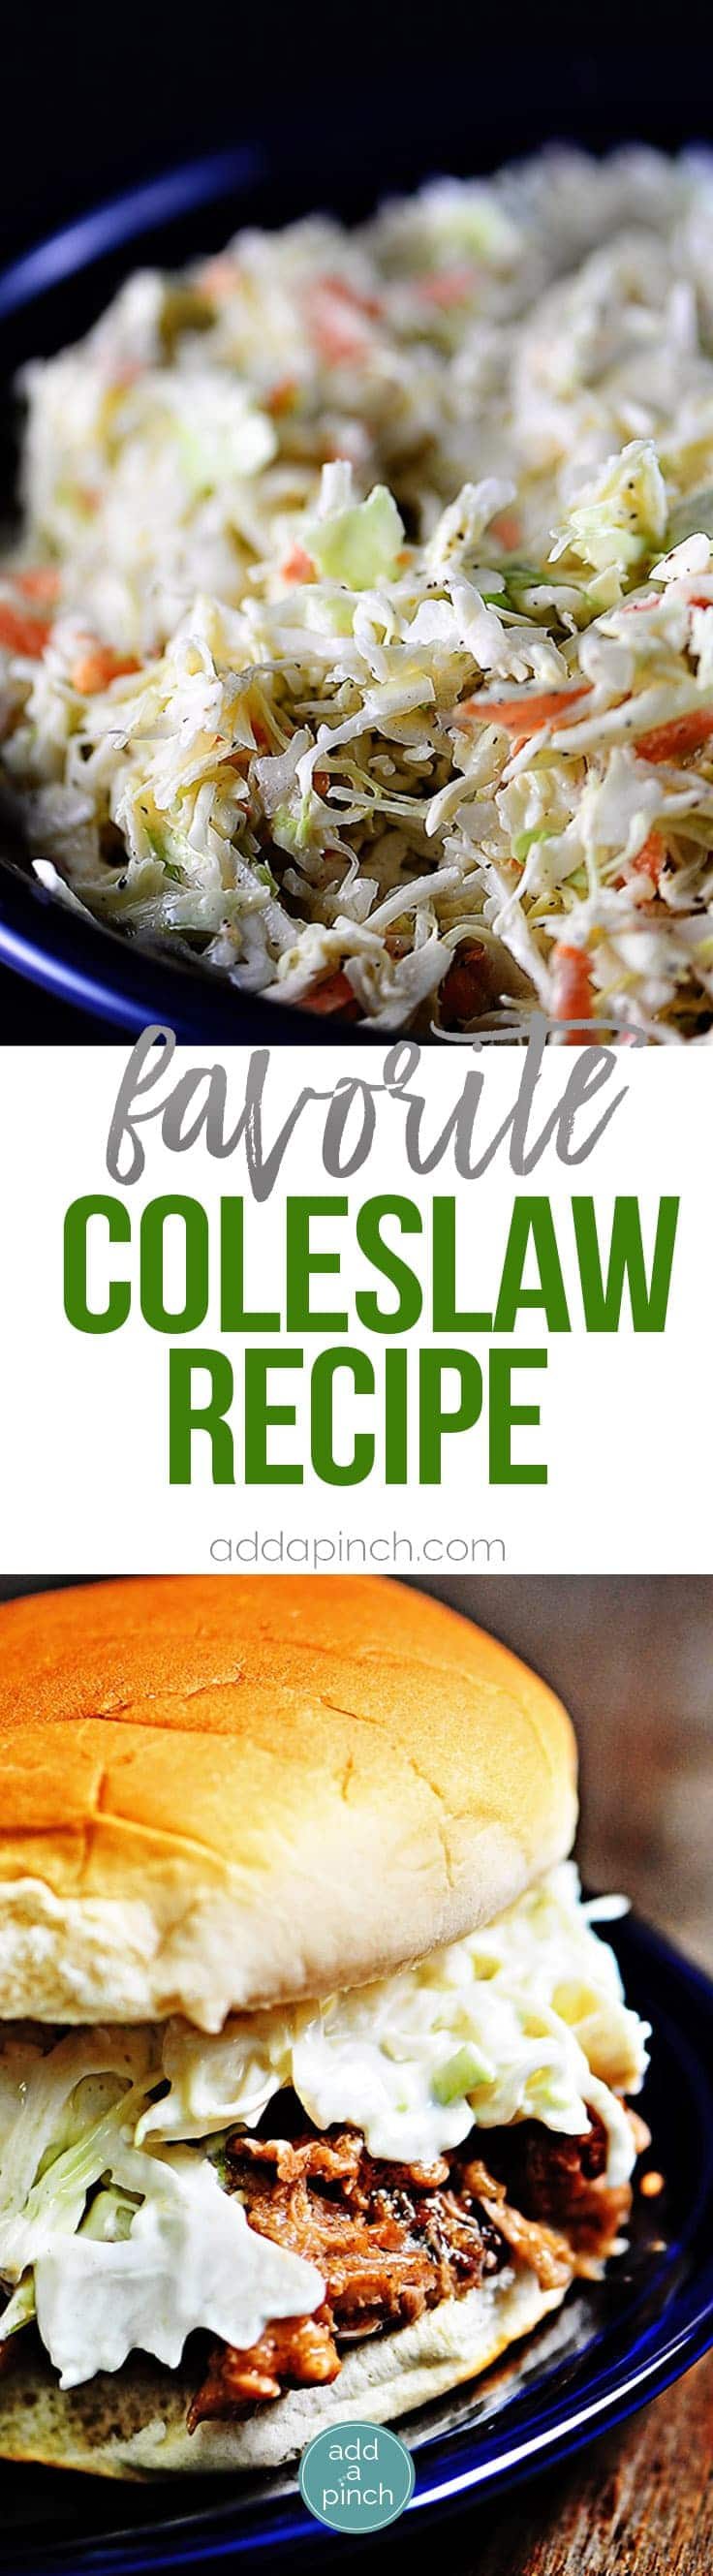 Coleslaw Recipe - A classic coleslaw recipe. Made of cabbage and topped with a delicious dressing, this coleslaw recipe is one you'll use again and again. // addapinch.com